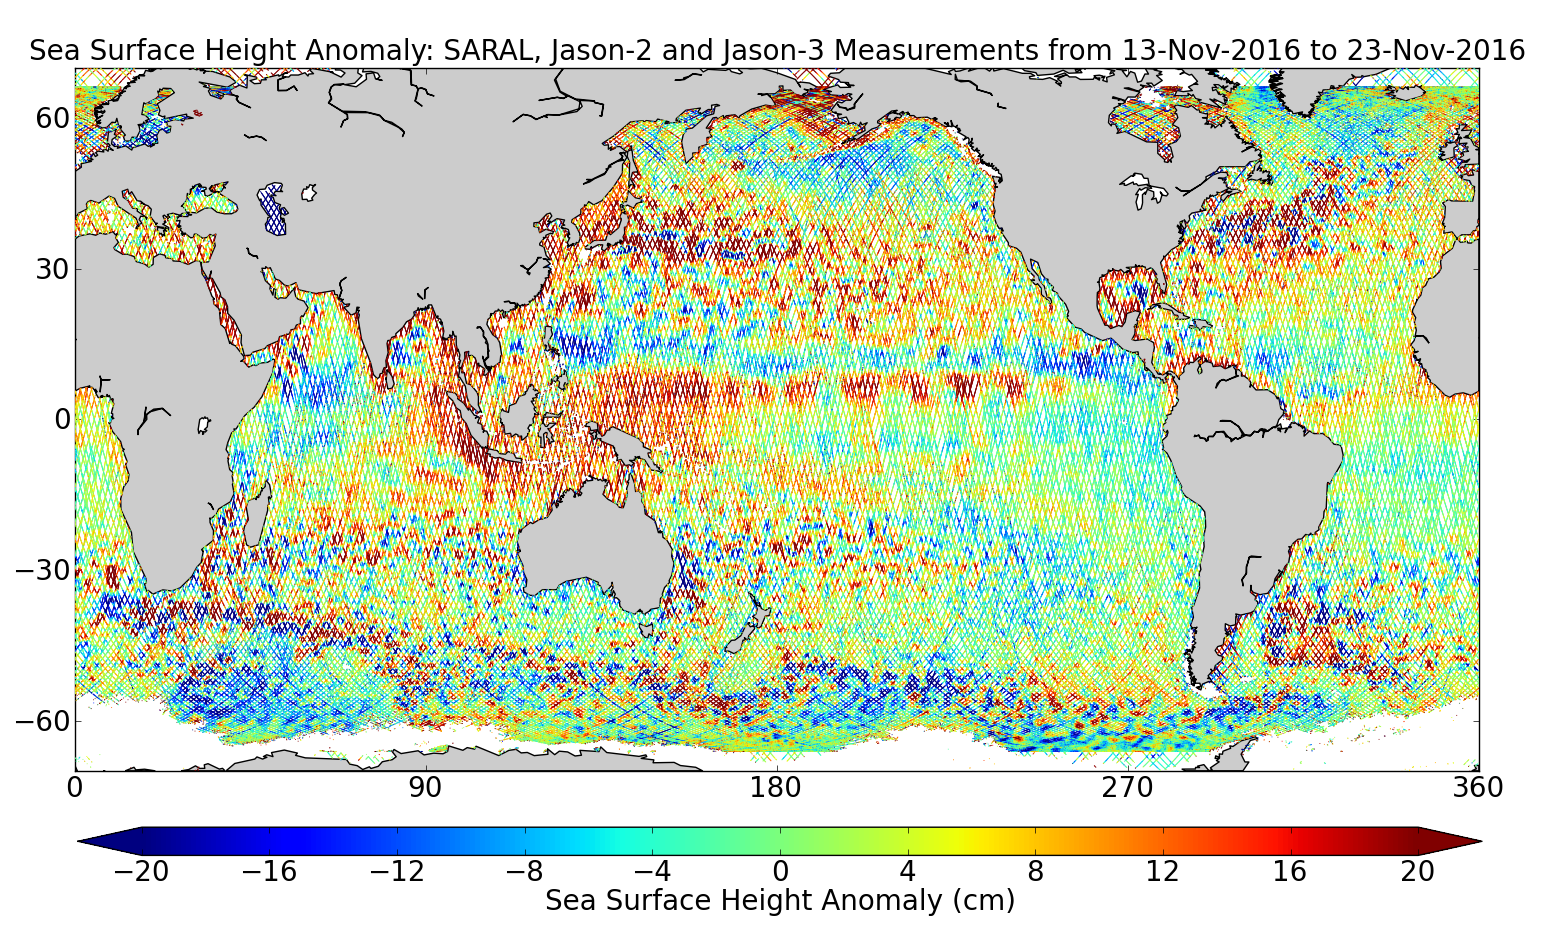 Sea Surface Height Anomaly: SARAL, Jason-2 and Jason-3 Measurements from 13-Nov-2016 to 23-Nov-2016